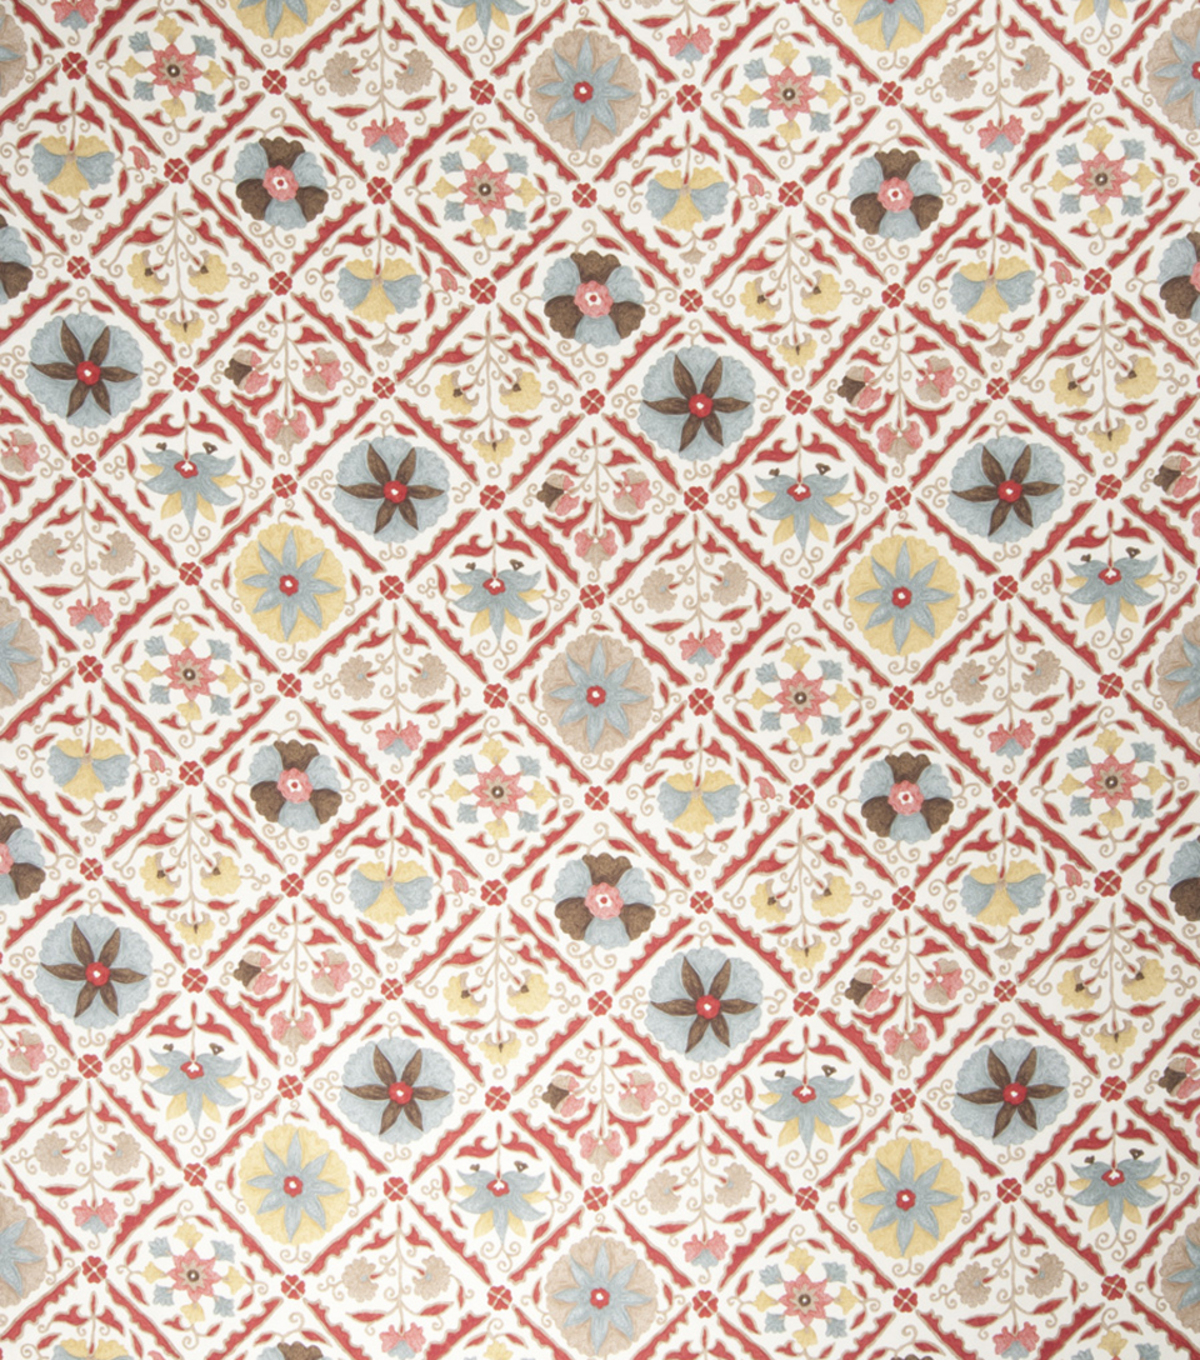 Home Decor 8\u0022x8\u0022 Fabric Swatch-Eaton Square Anchor Curry Spice